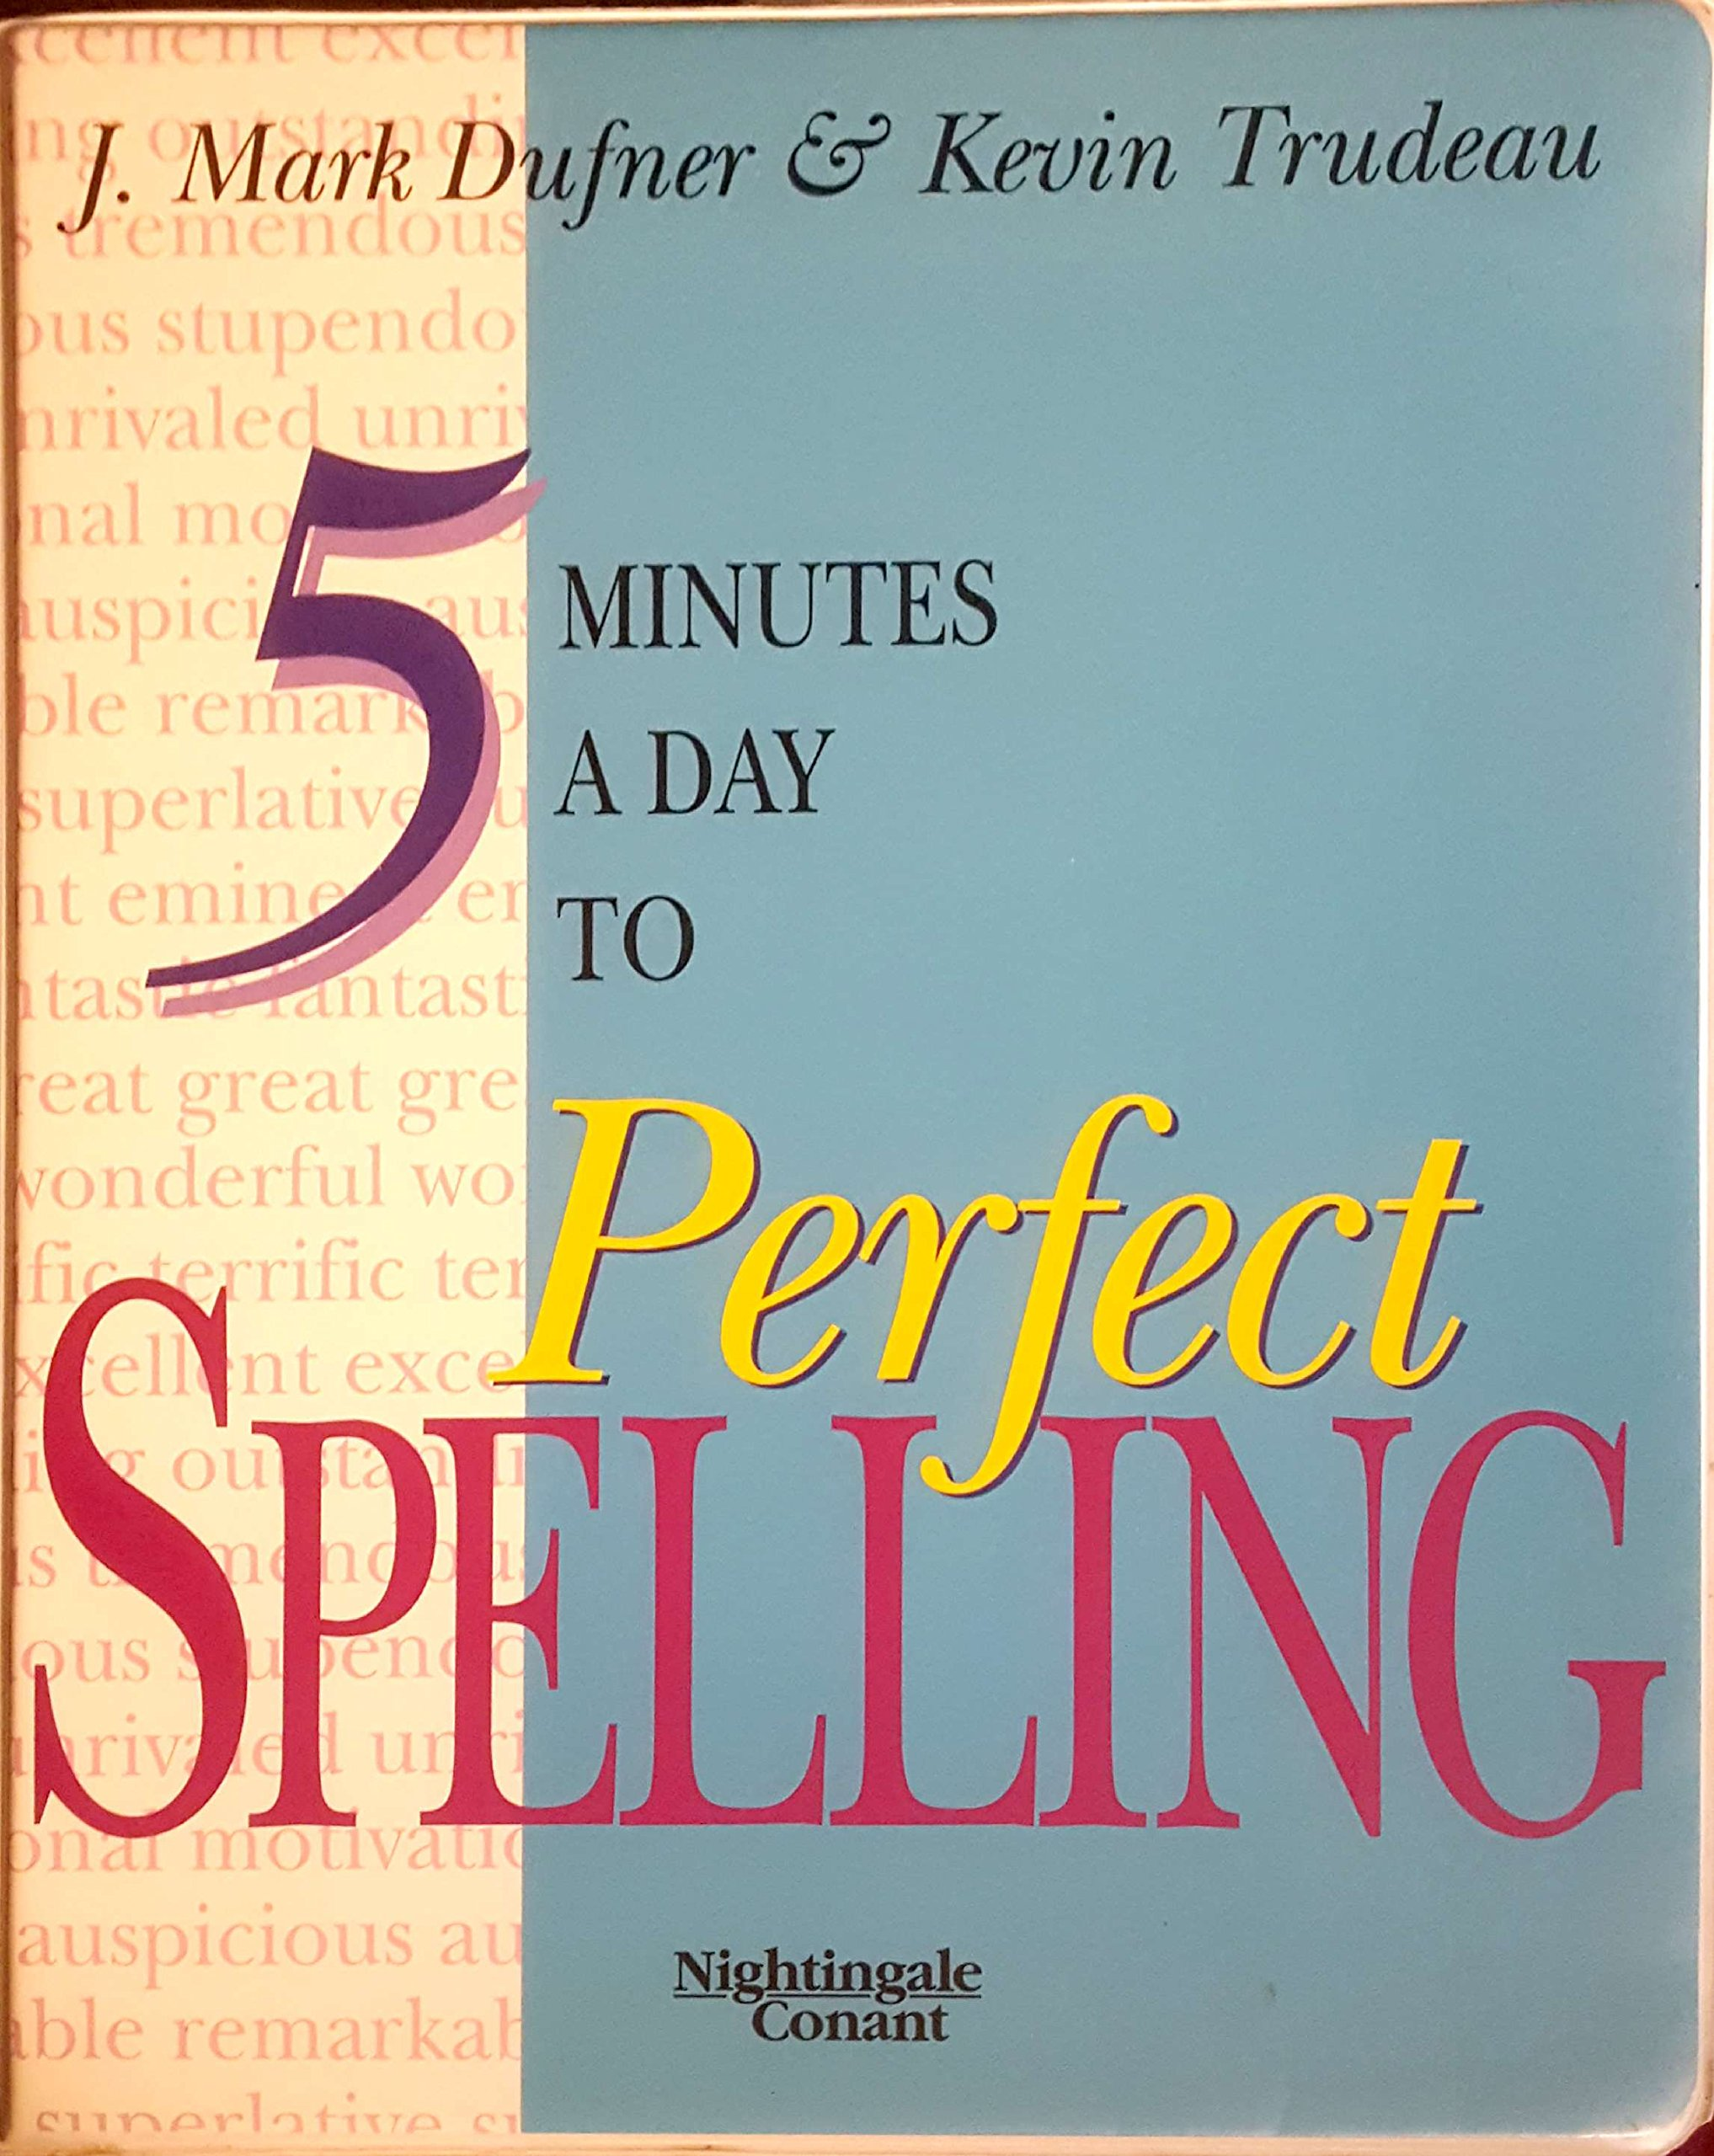 5 Minutes a Day to Perfect Spelling - Audio Seminar - Six Audio Cassette Set - J. Mark Dufner & Kevin Trudeau (Nightingale Conant)